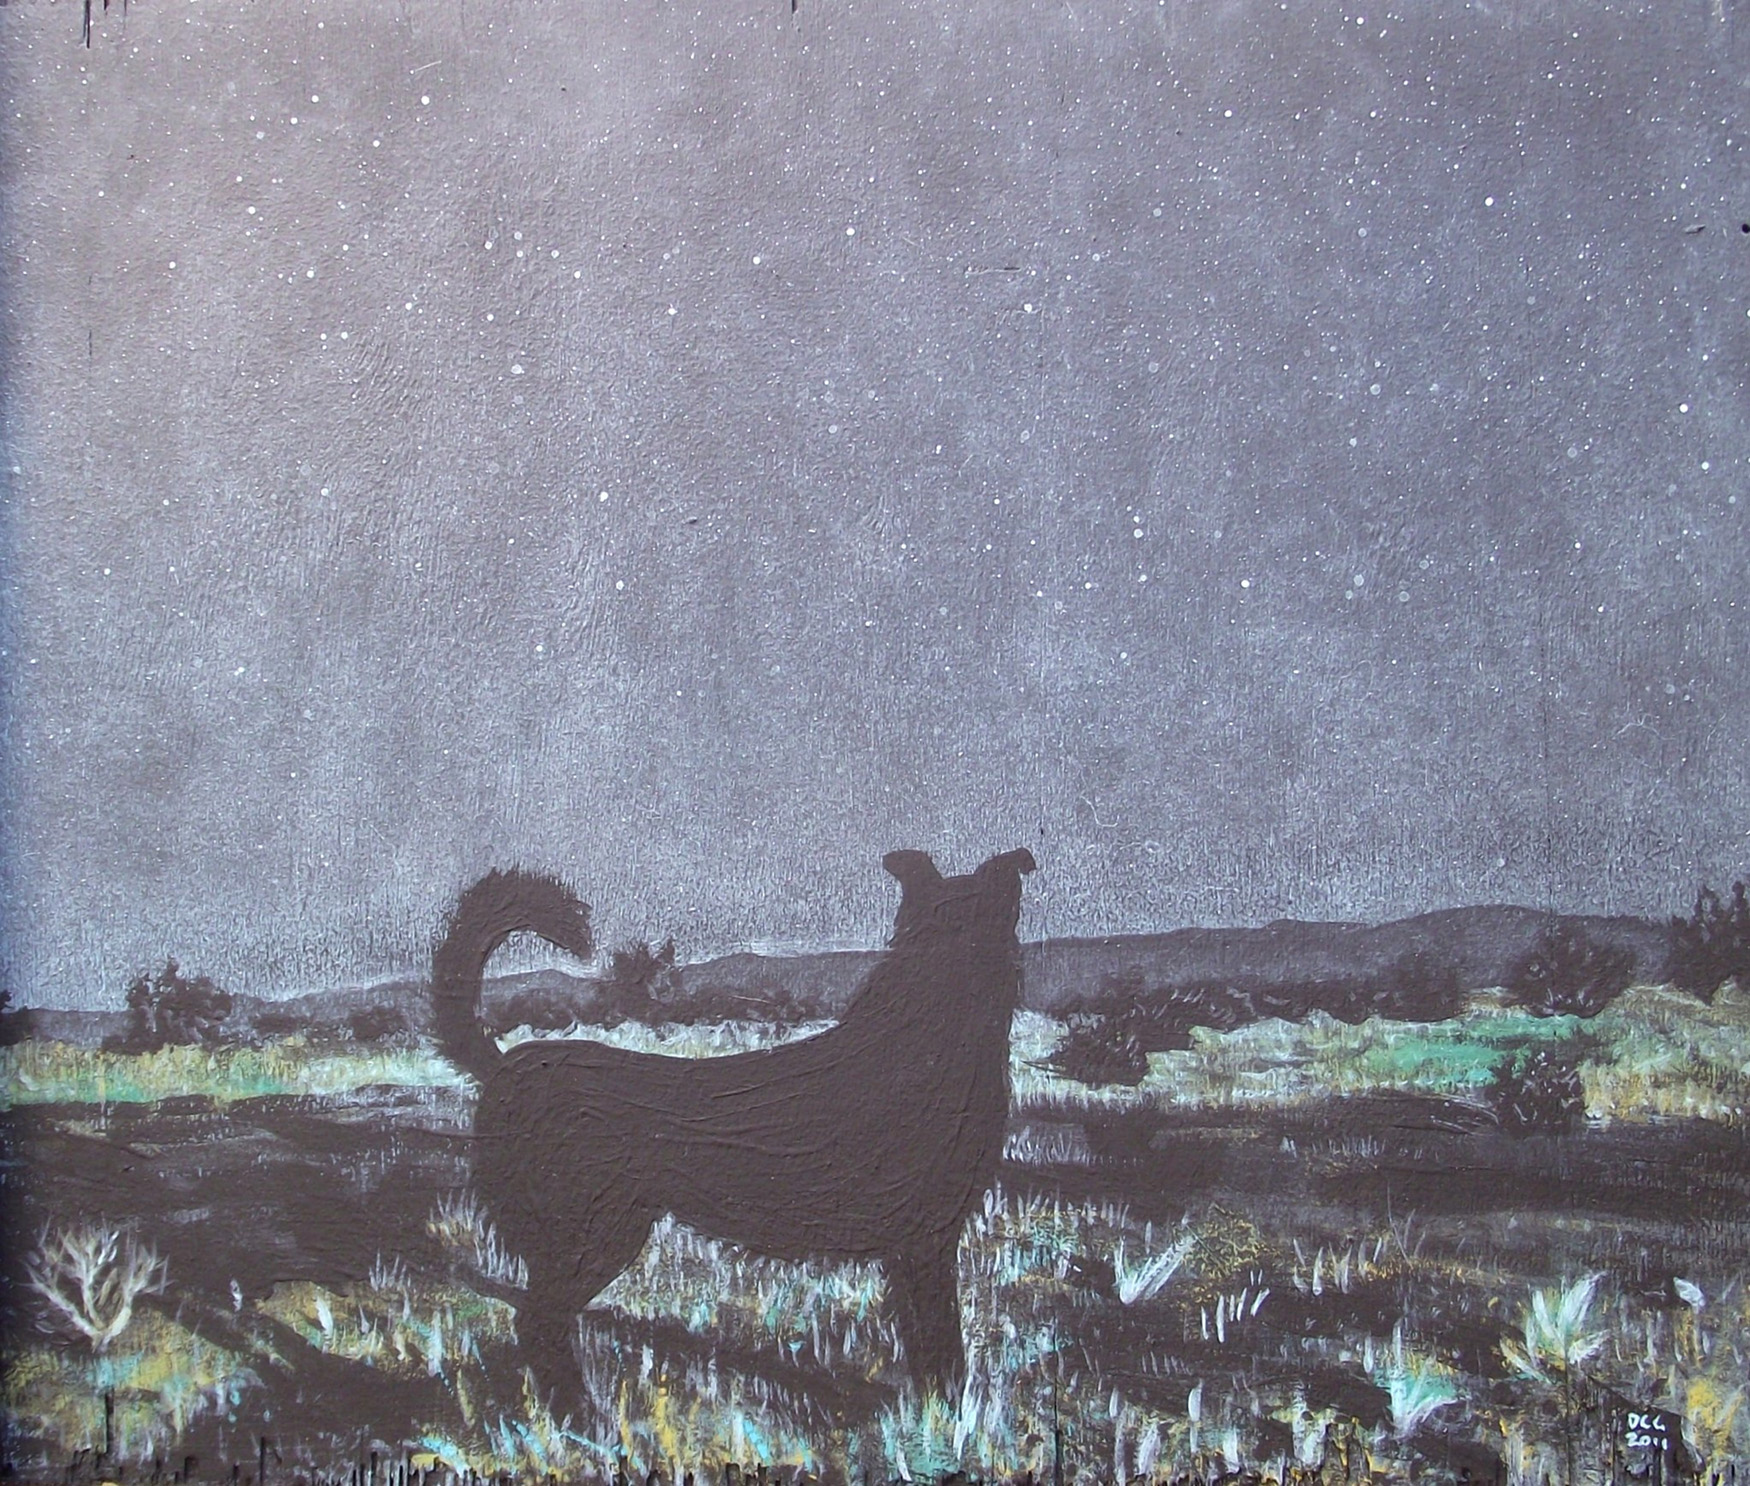 Black Dog By MoonLight II (2014)